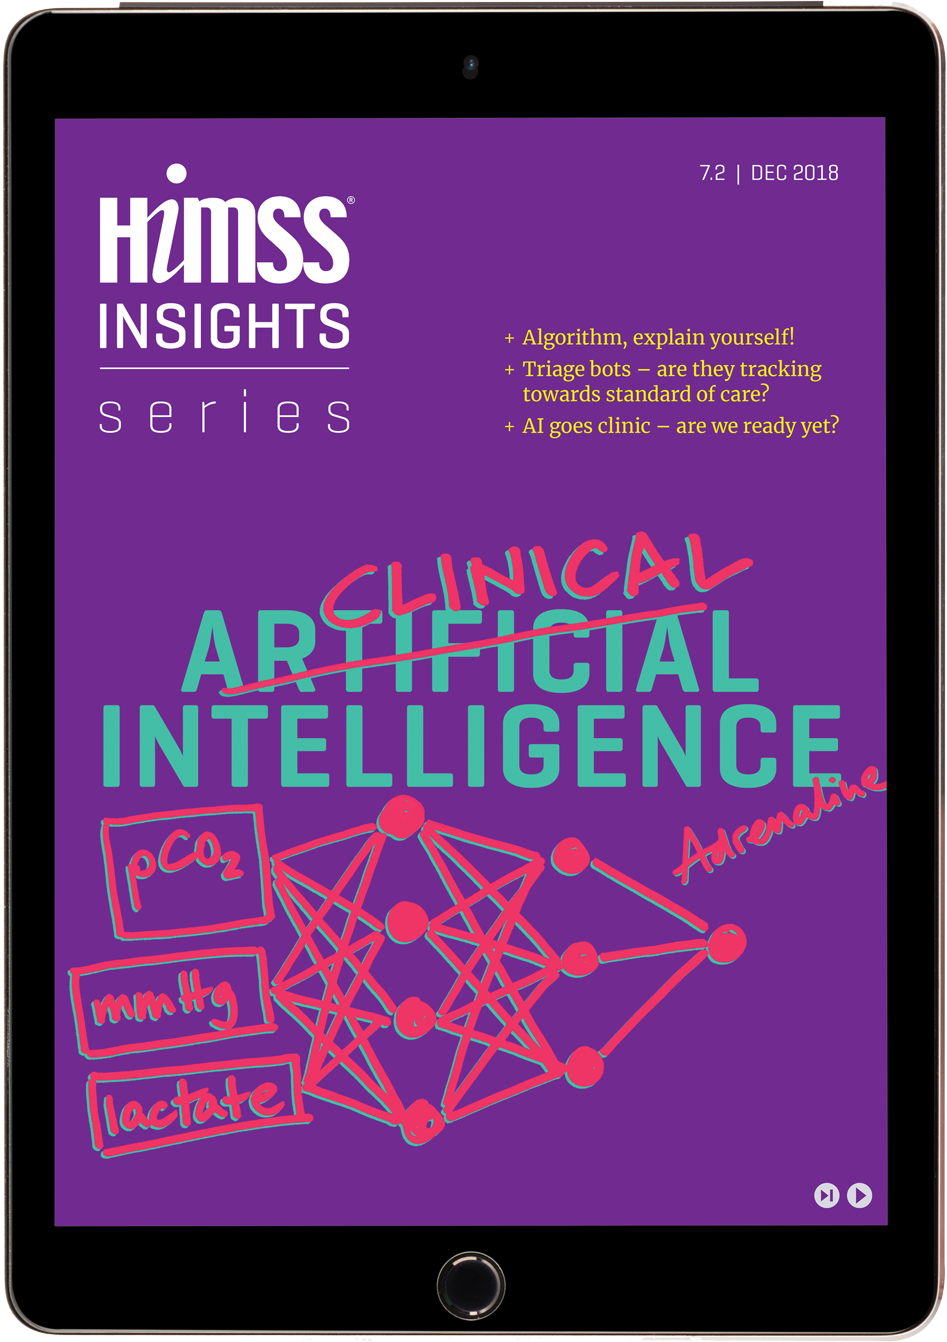 HIMSS Insights - Artificial Intelligence